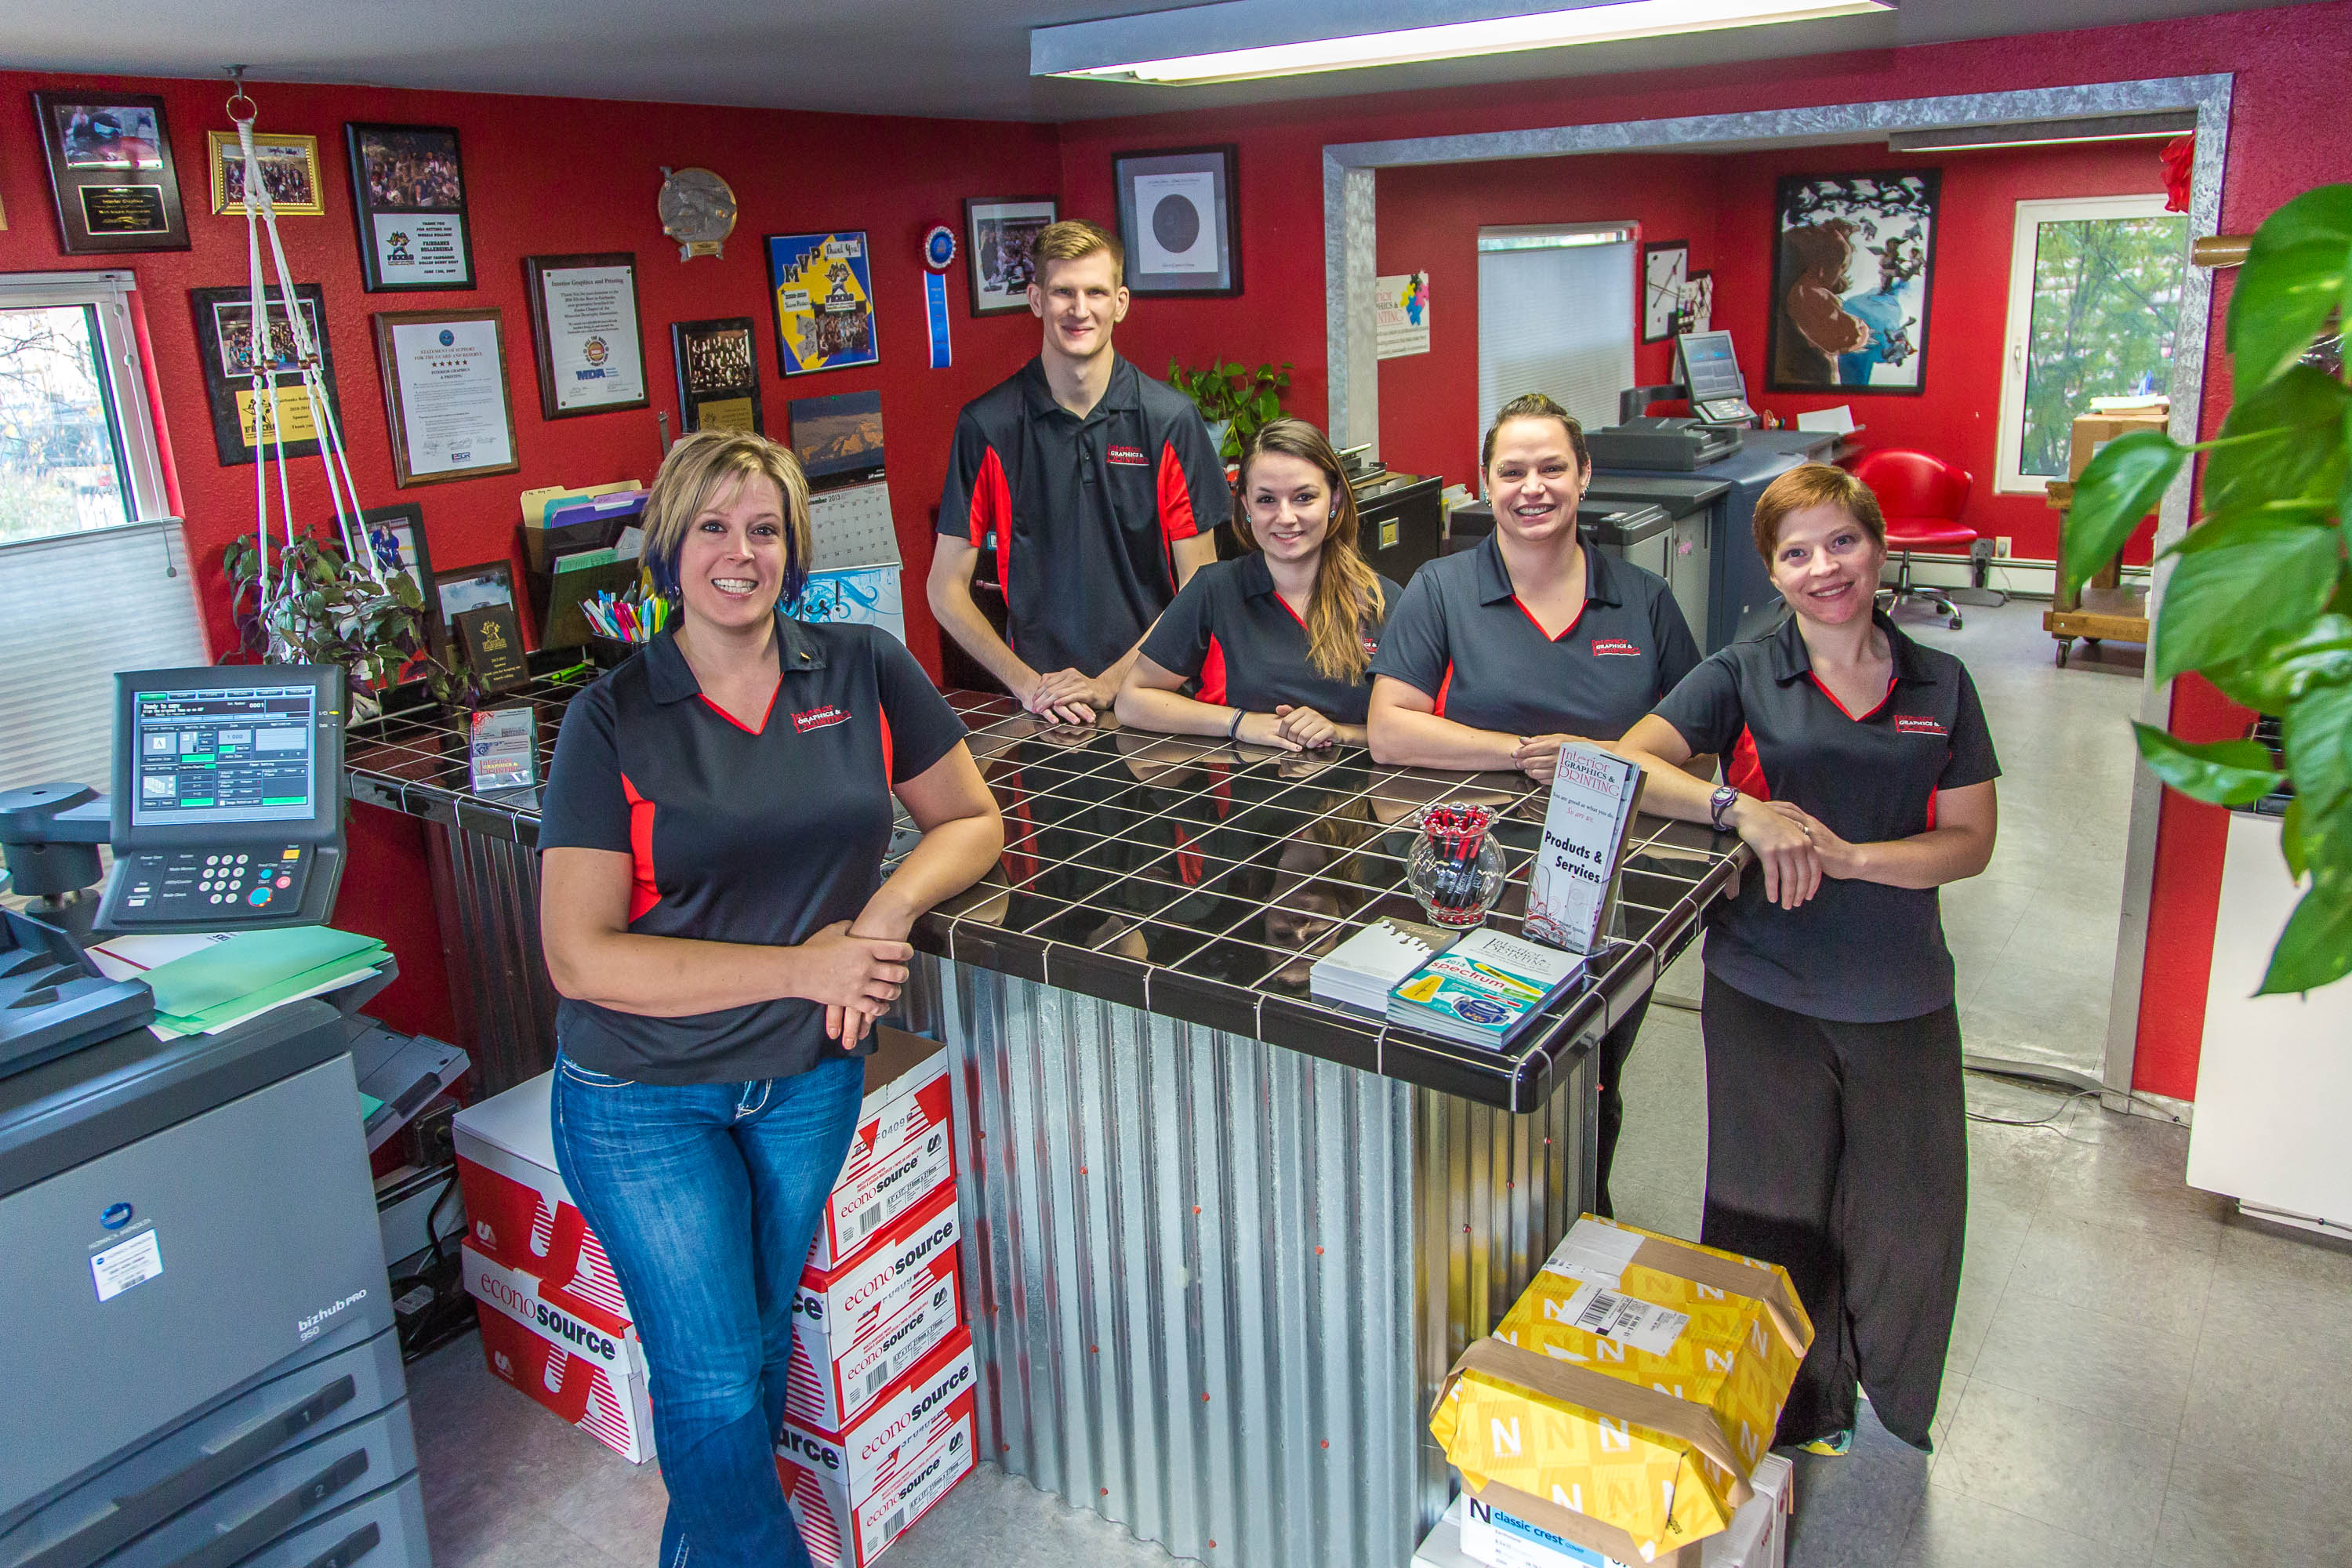 The team at Interior Graphics & Printing, including Michelle Maynard (left) and Suzie Avant (third from left).